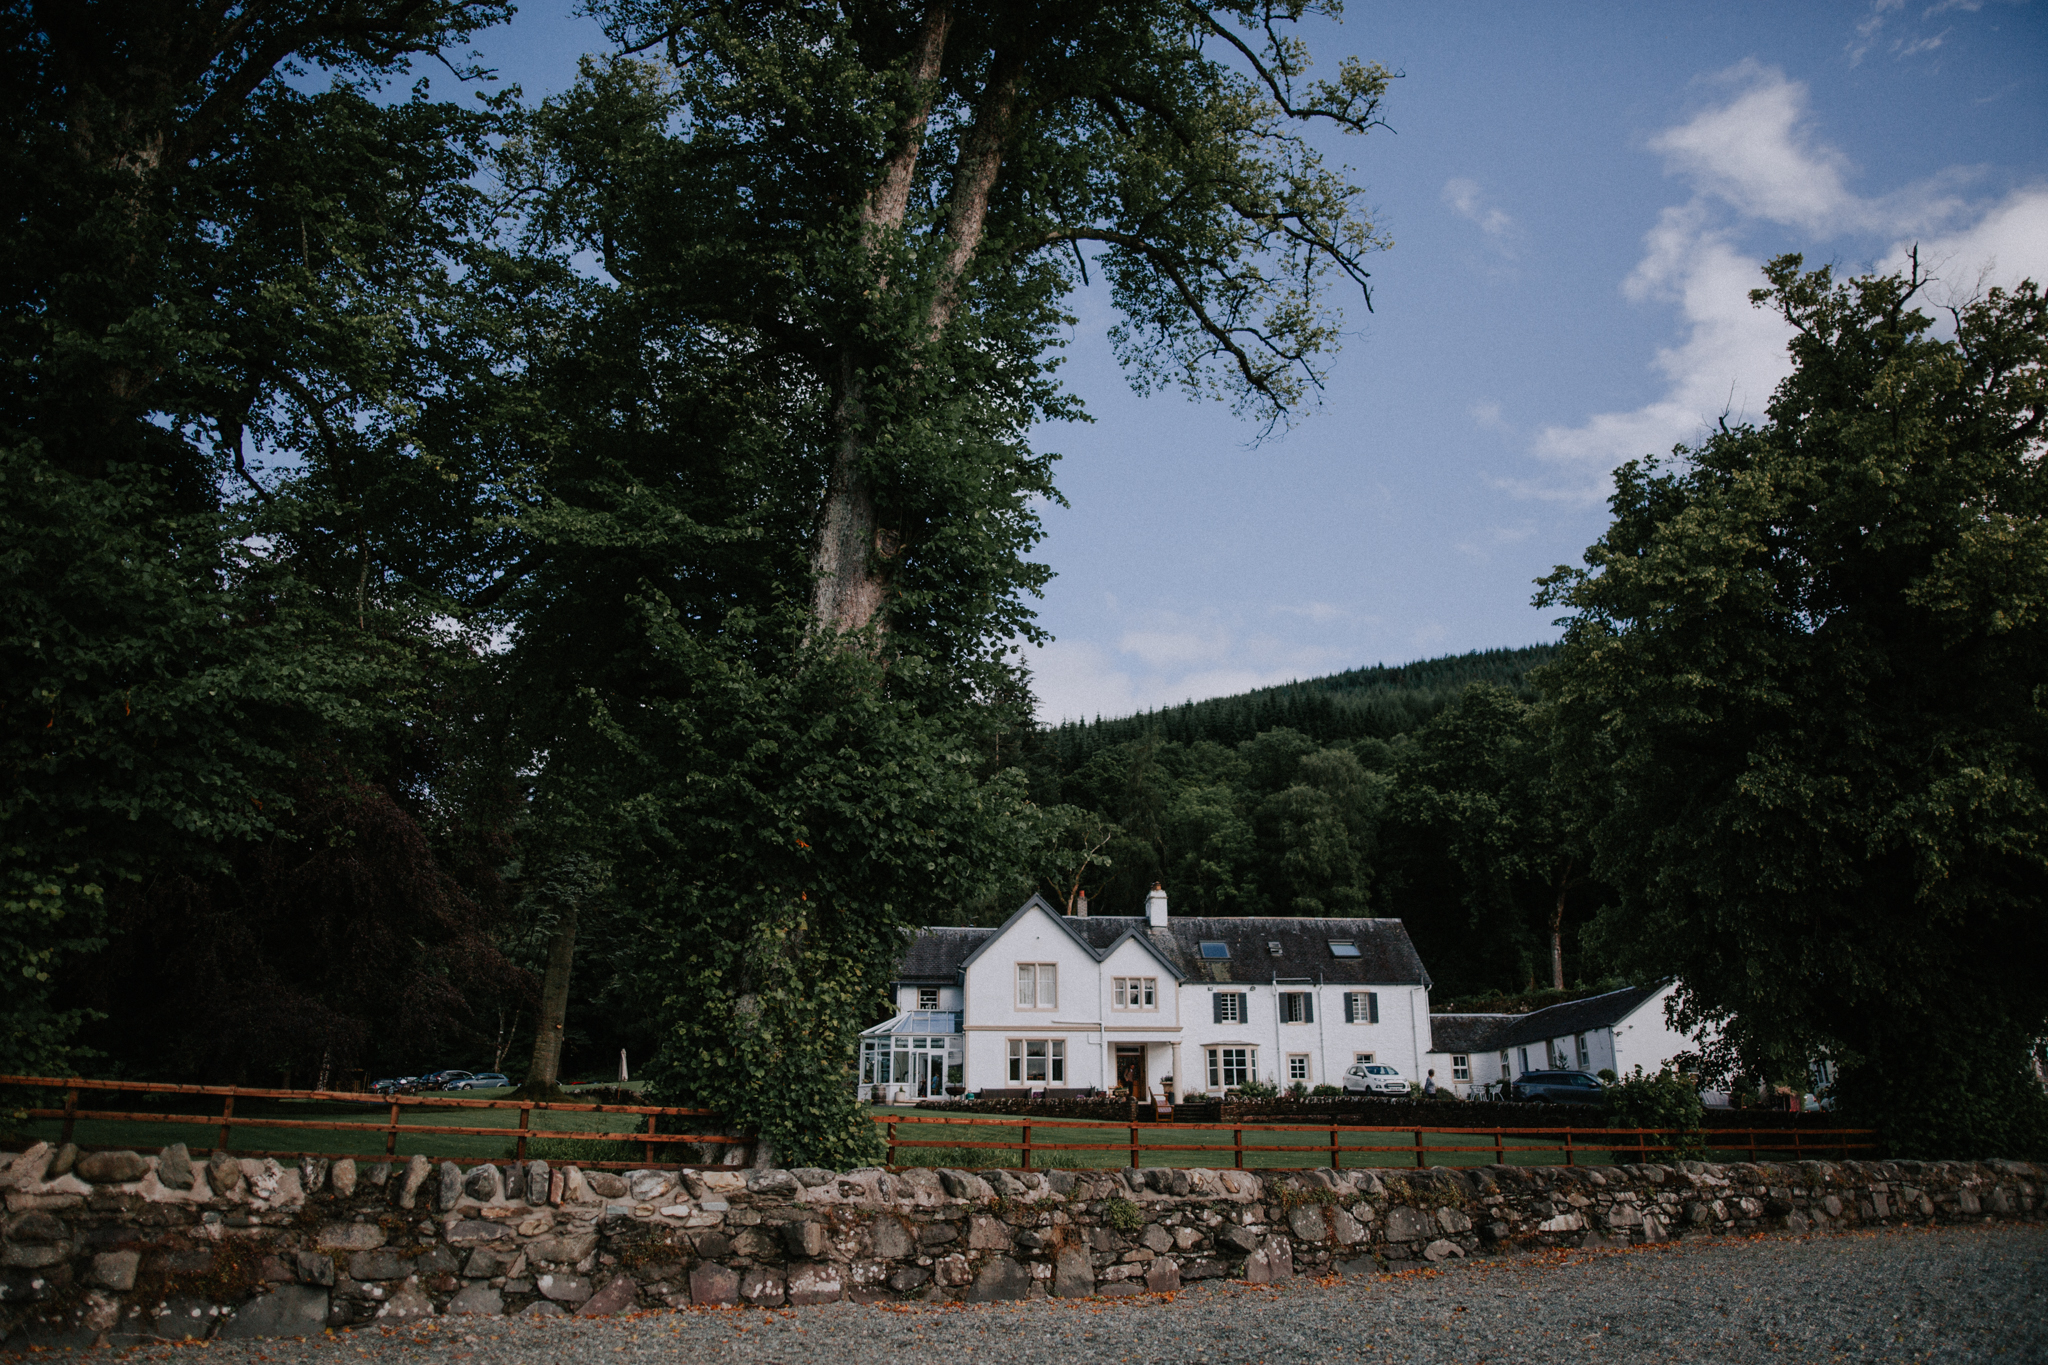 A wide angle landscape photo of the Altskeith Country House on Loch Are